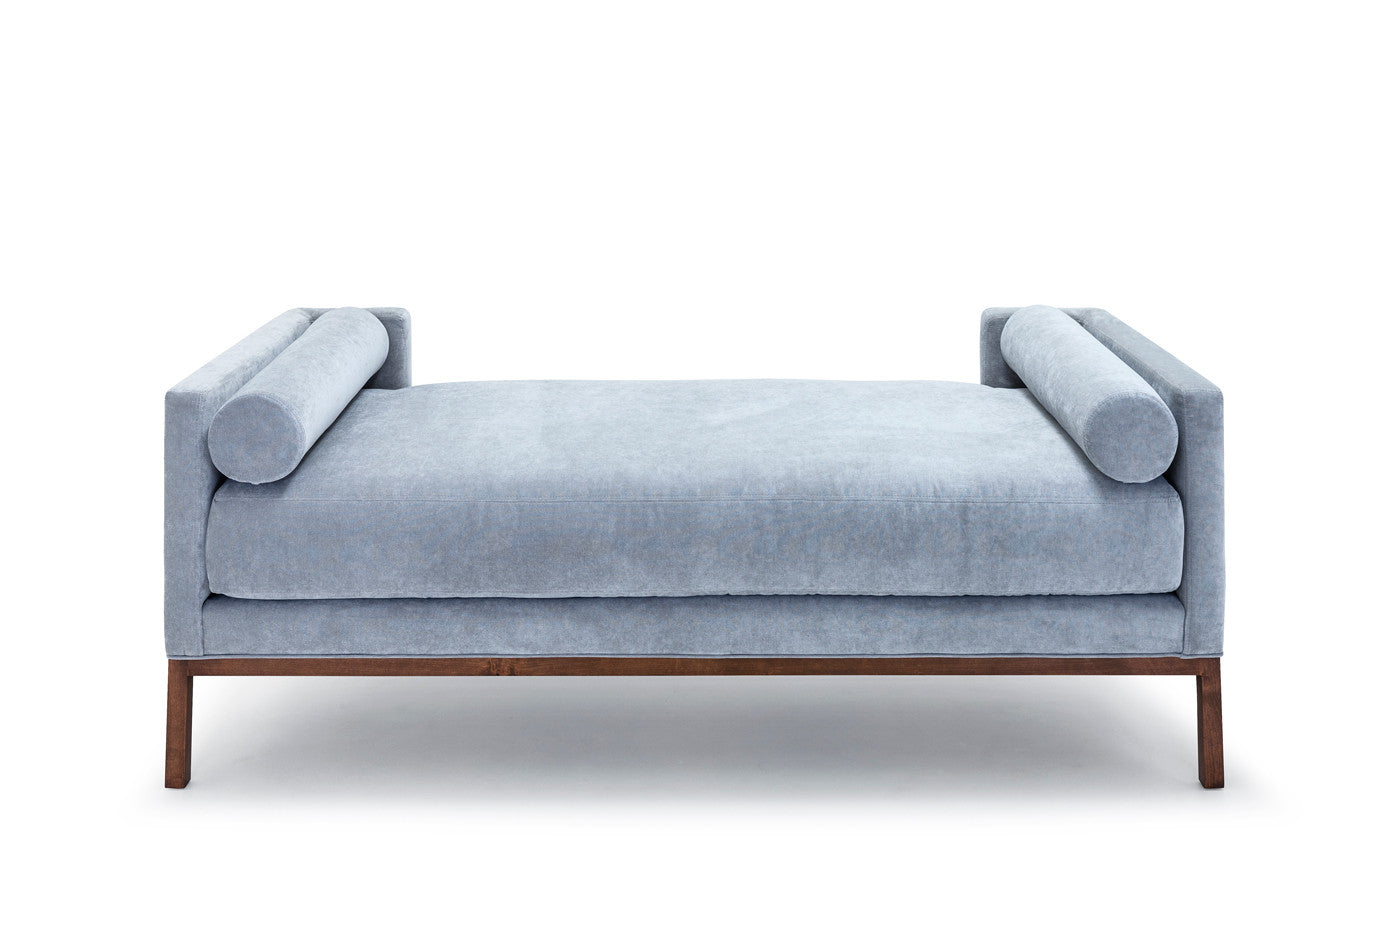 Wilshire Daybed & Bench